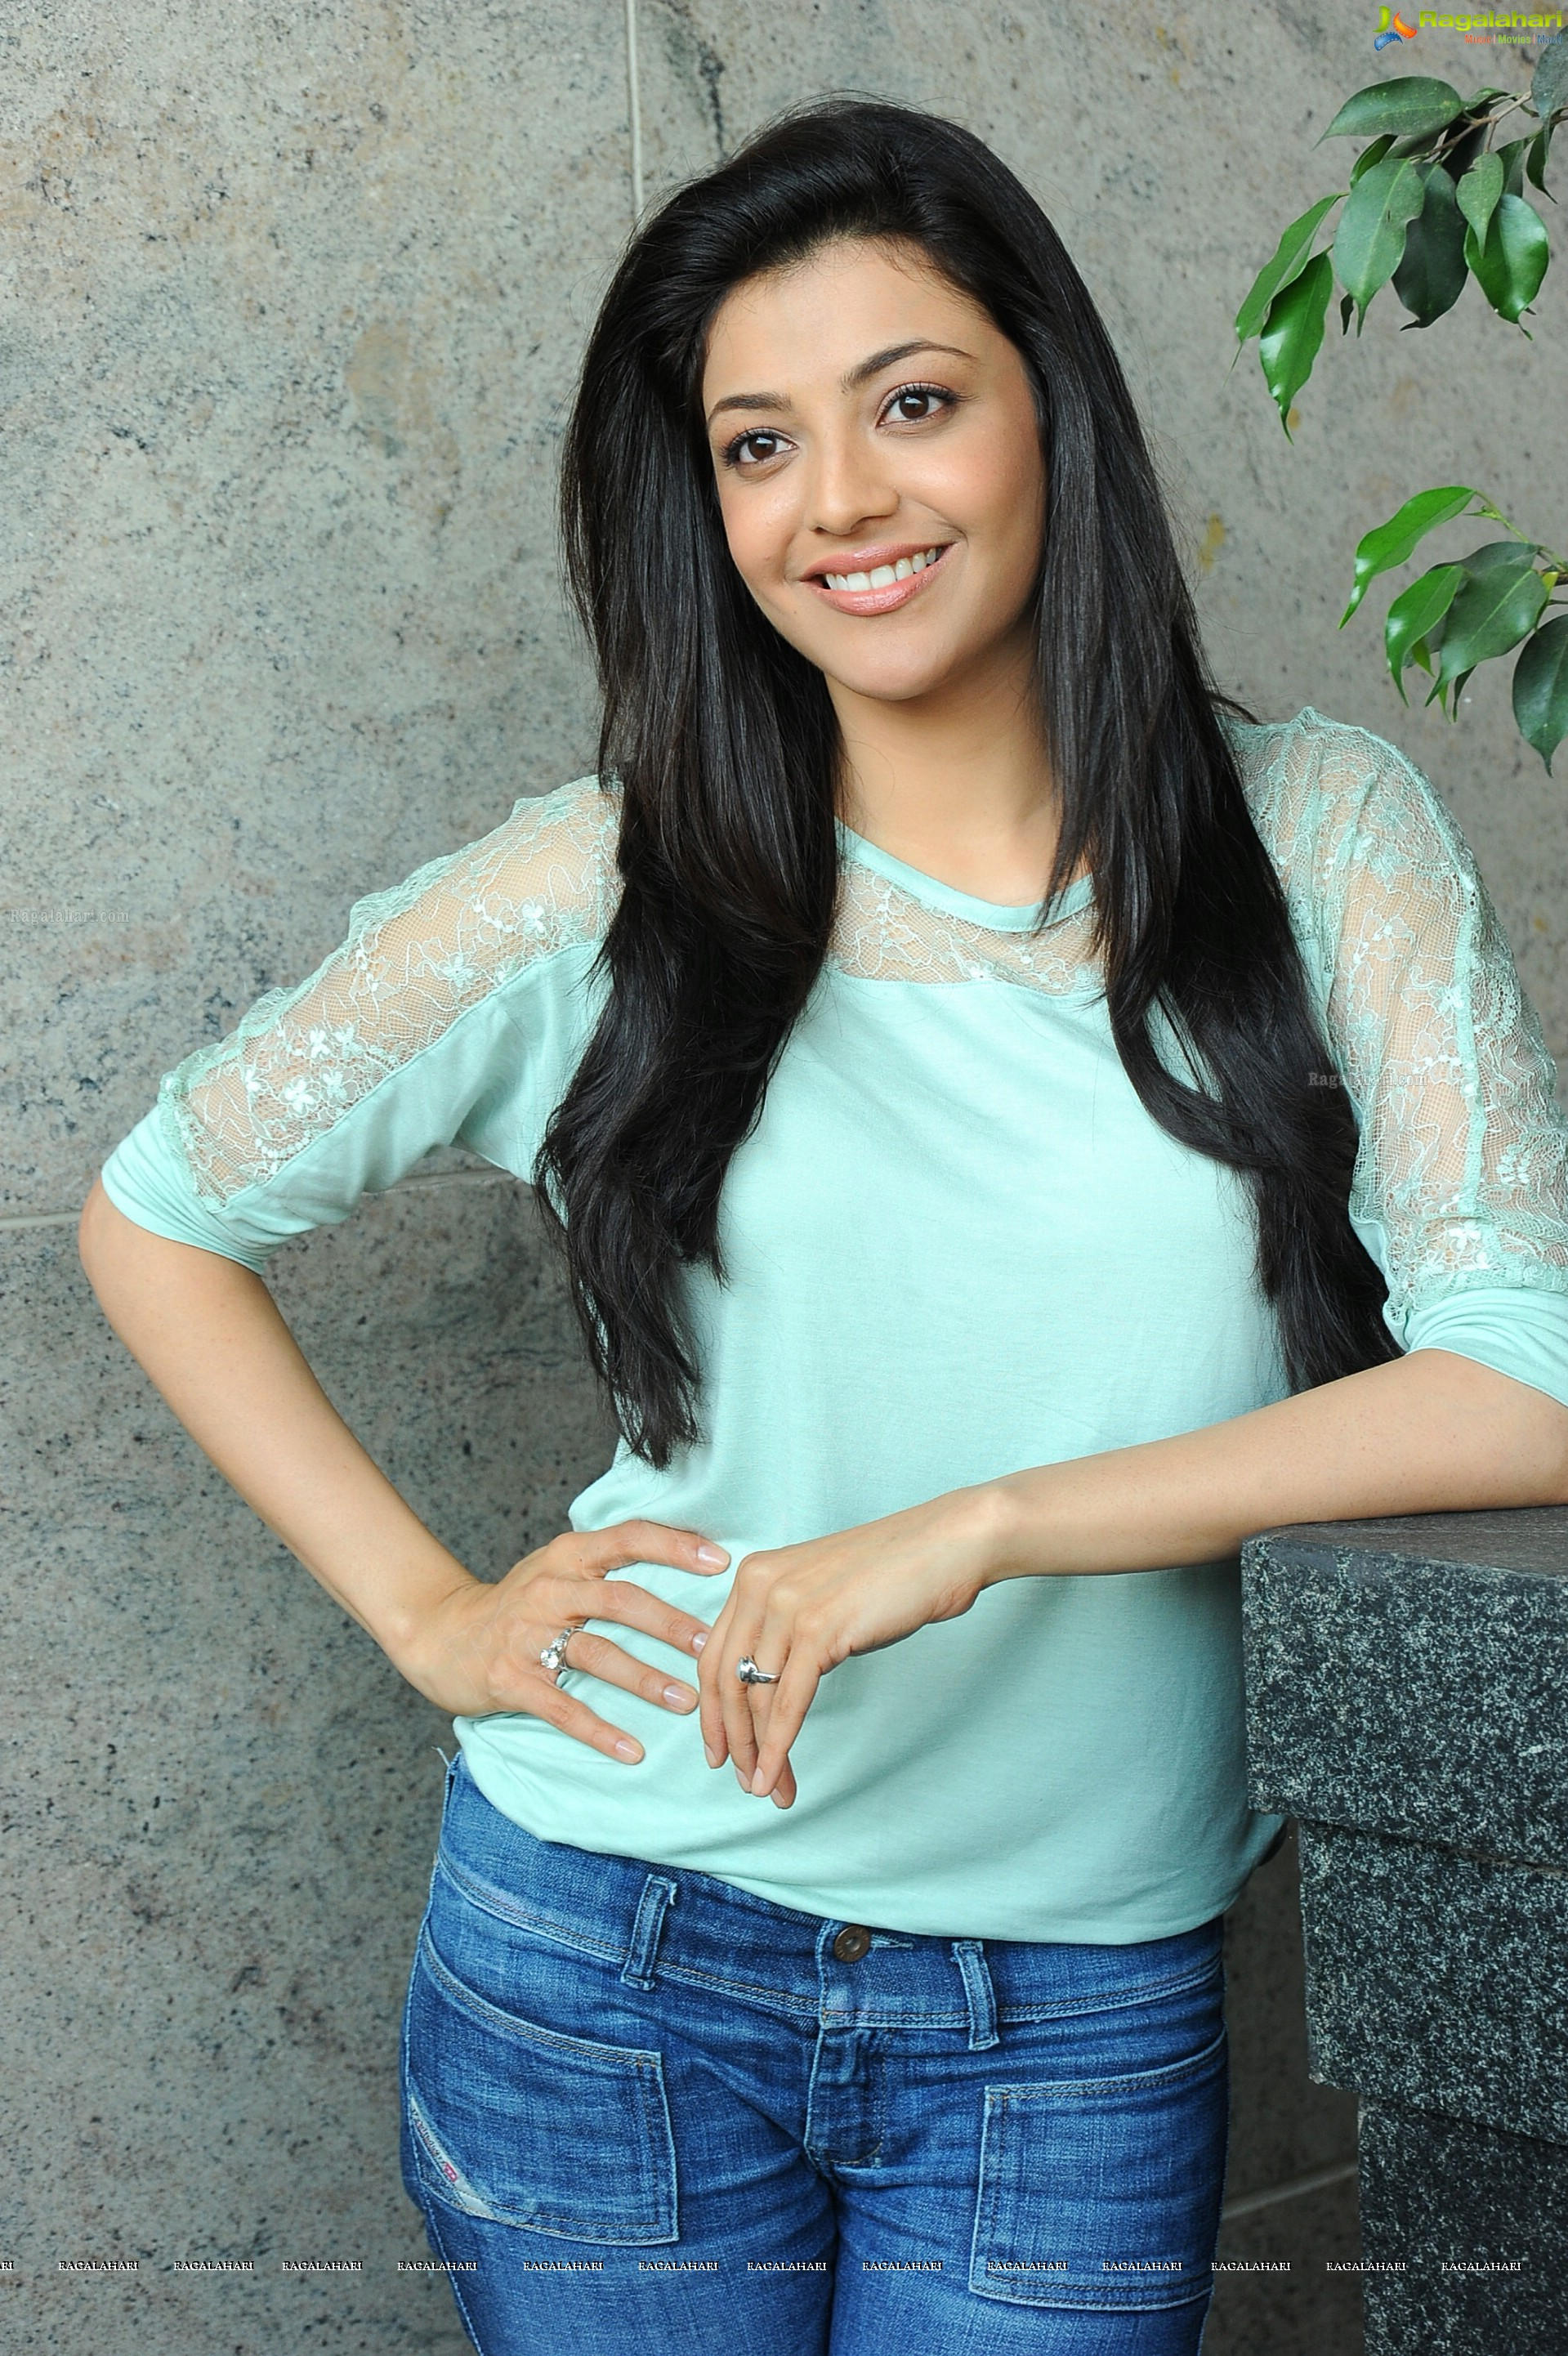 Kajal Aggarwal in T-Shirt and Jeans, HD Photos, Stills, Images